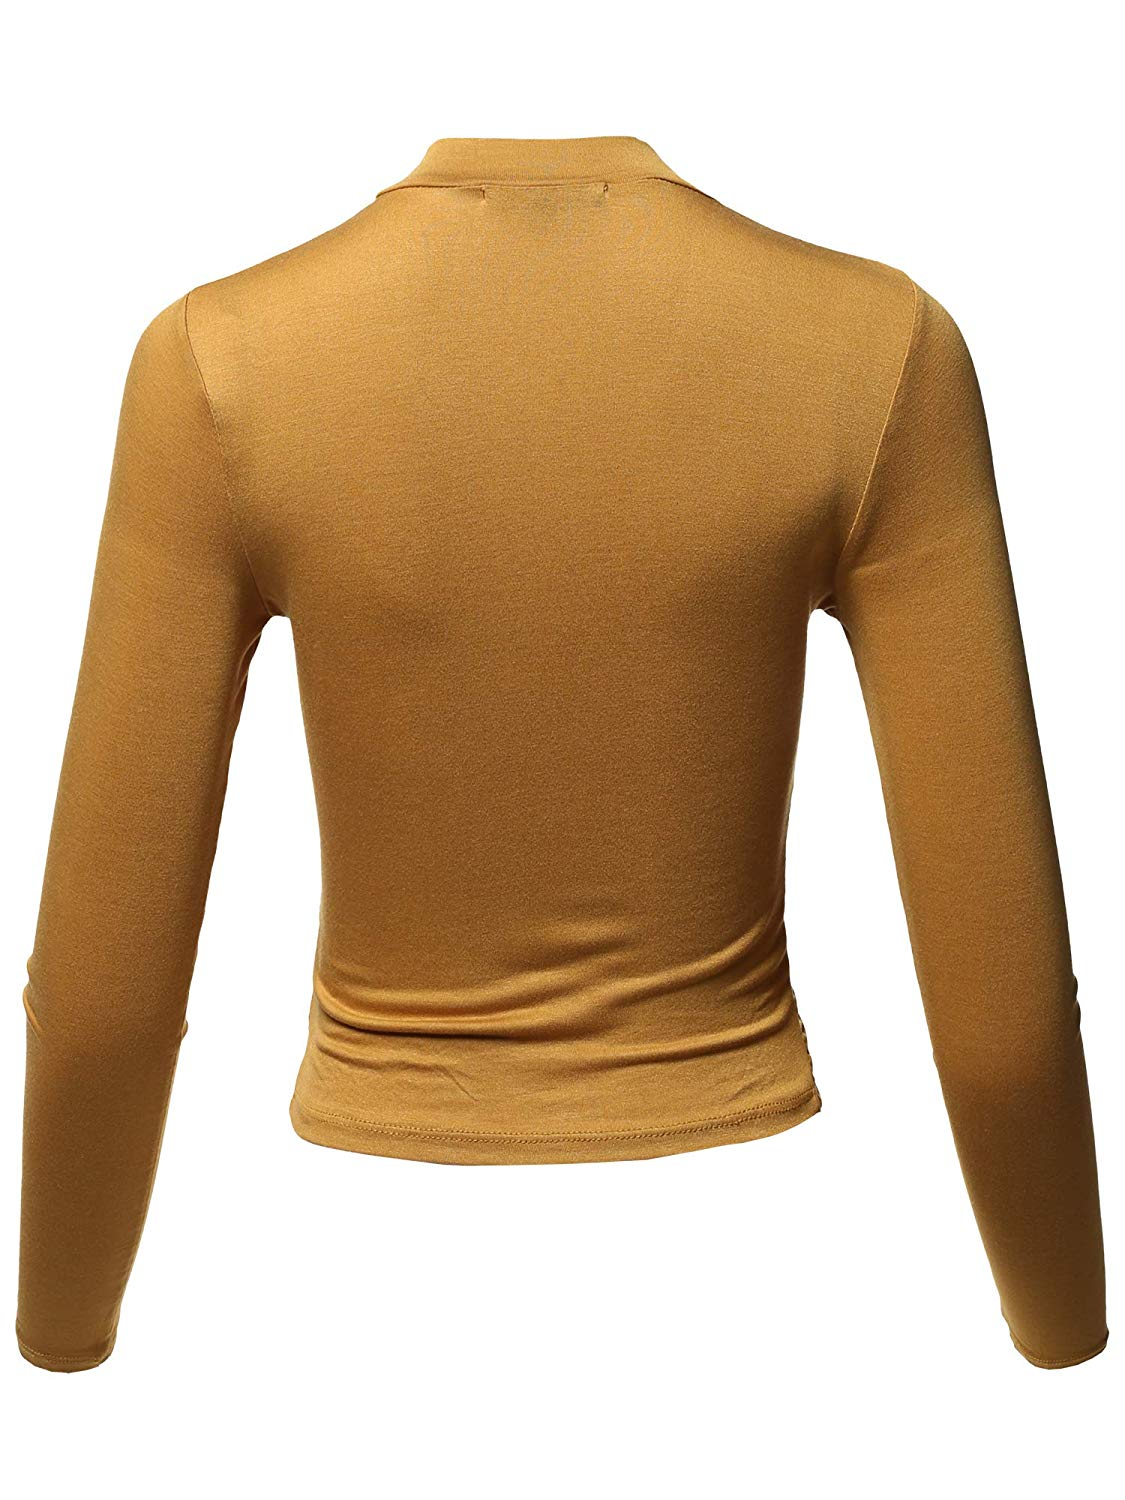 10 Piece Women's Solid Basic Sleeve Neck Top long sleeve crop top  Cotton  Casual  Broadcloth Three Quarter  Beading-in T-Shirts from Women's Clothing    1